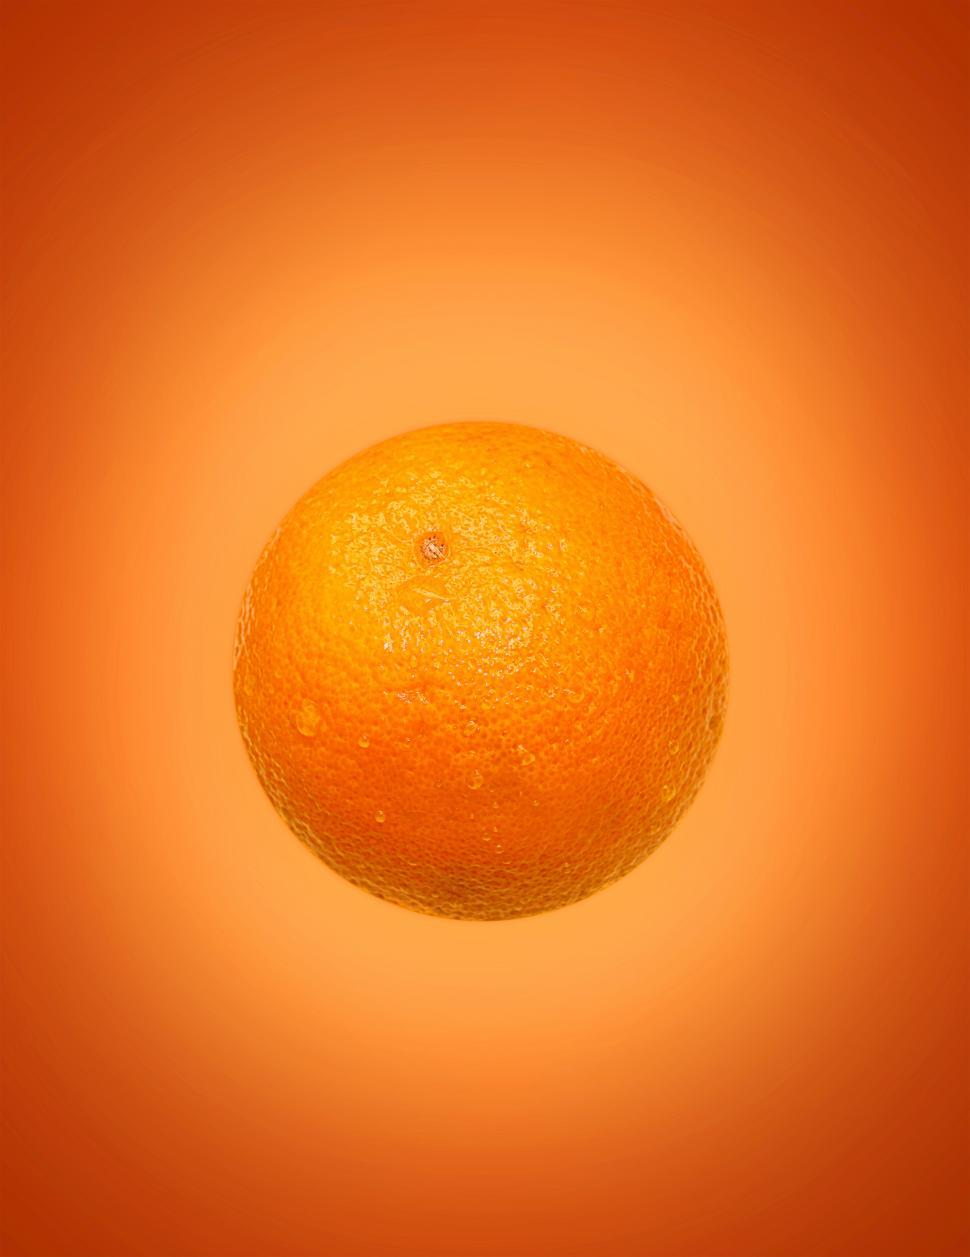 Download Free Stock HD Photo of Orange on Orange Online